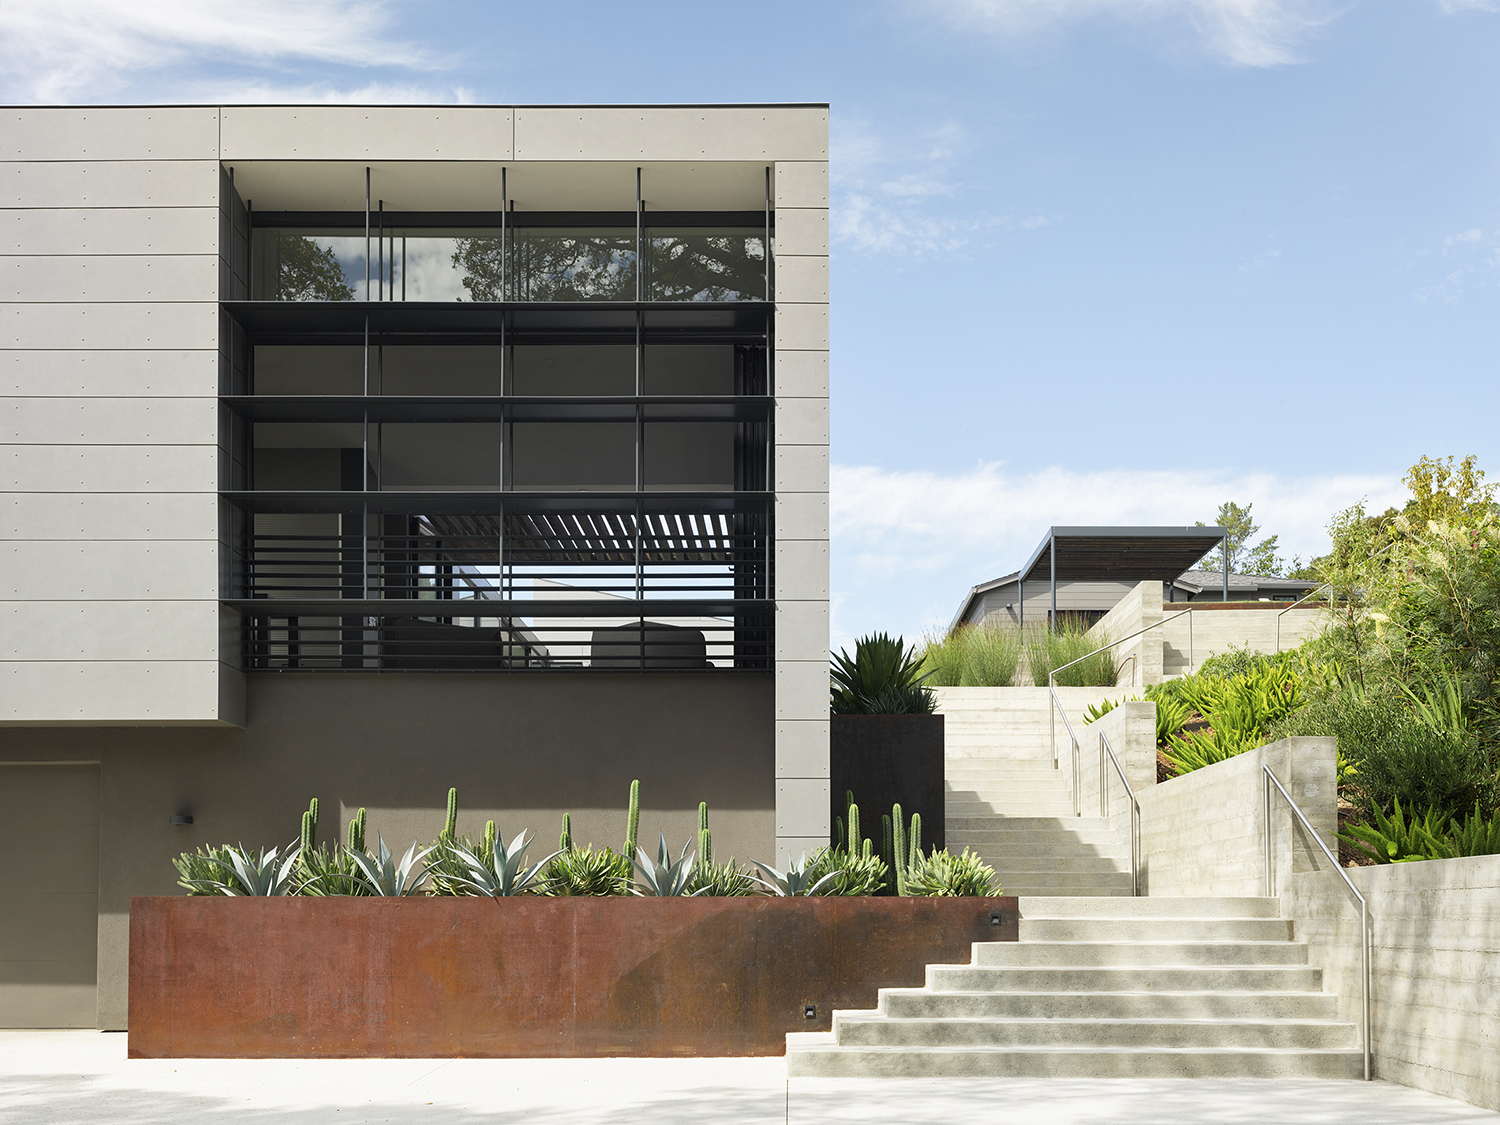 Ross Hillside modern home outside view of the front of the house with stairs on the side